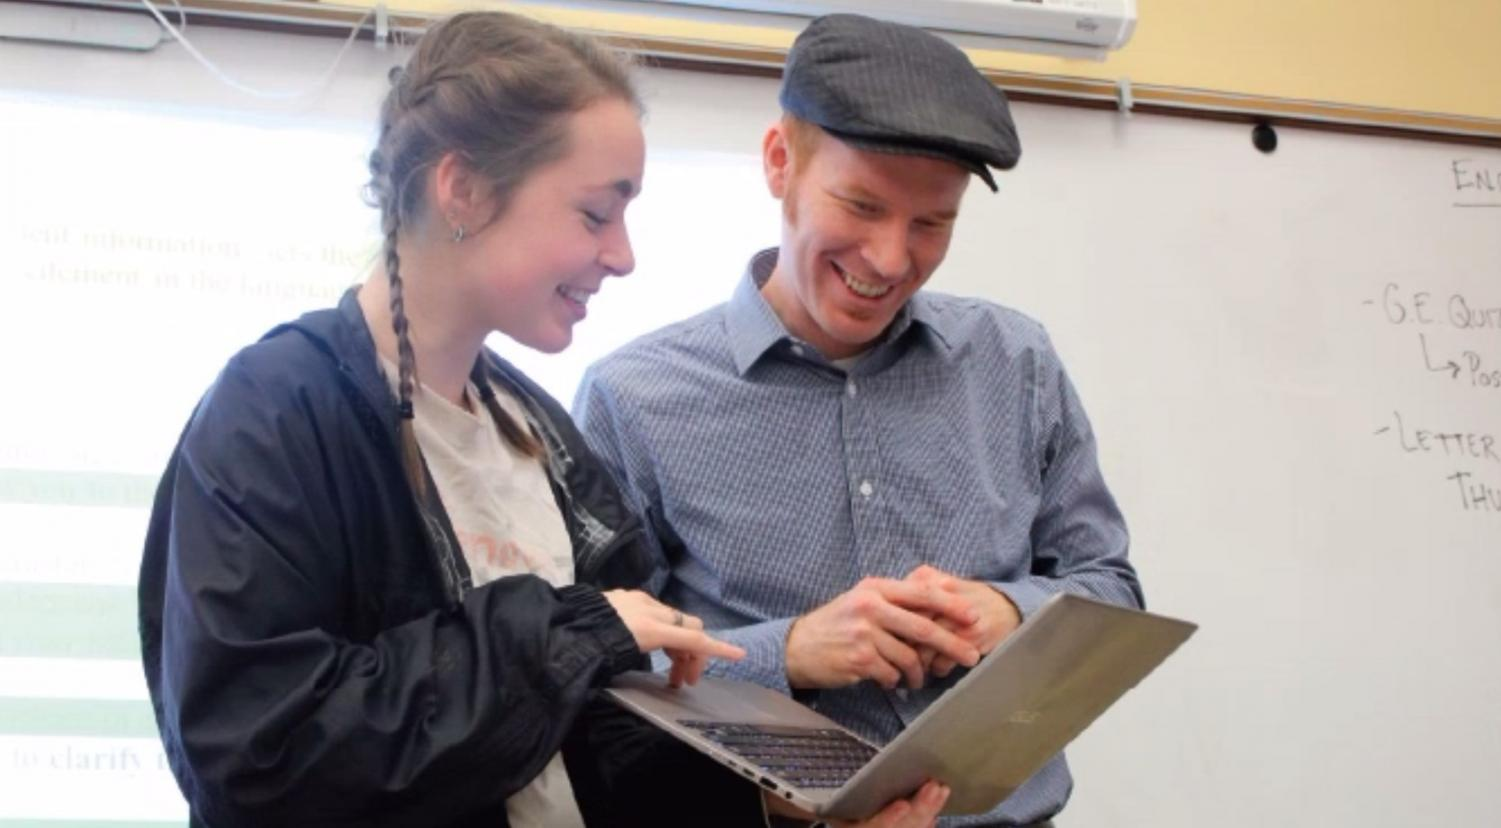 AP Literature and Composition teacher Jake Riordan helps SENIOR Isabelle Brandicourt (right) and Louis Martini, '20 (left), with ideas for a project. Riordan worked closely with his students during second quarter as they completed a comprehensive poetry study, including guiding them as they wrote poems in the style of a living poet and then sent their poem to the poet.